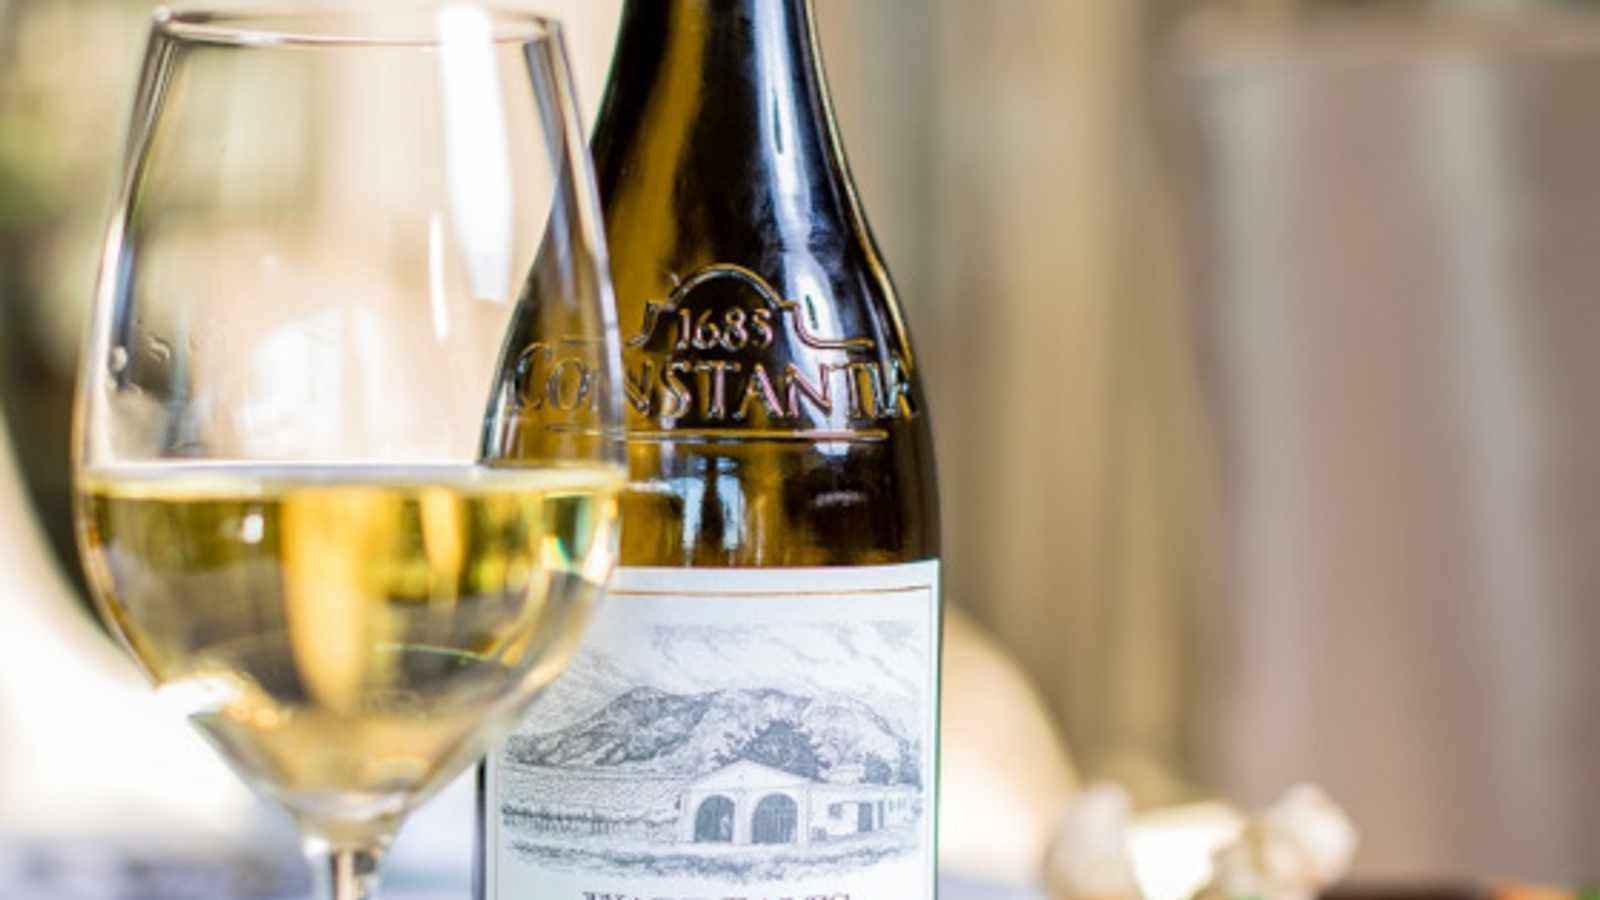 The new Wade Bales Constantia White 2018—a stylish offering